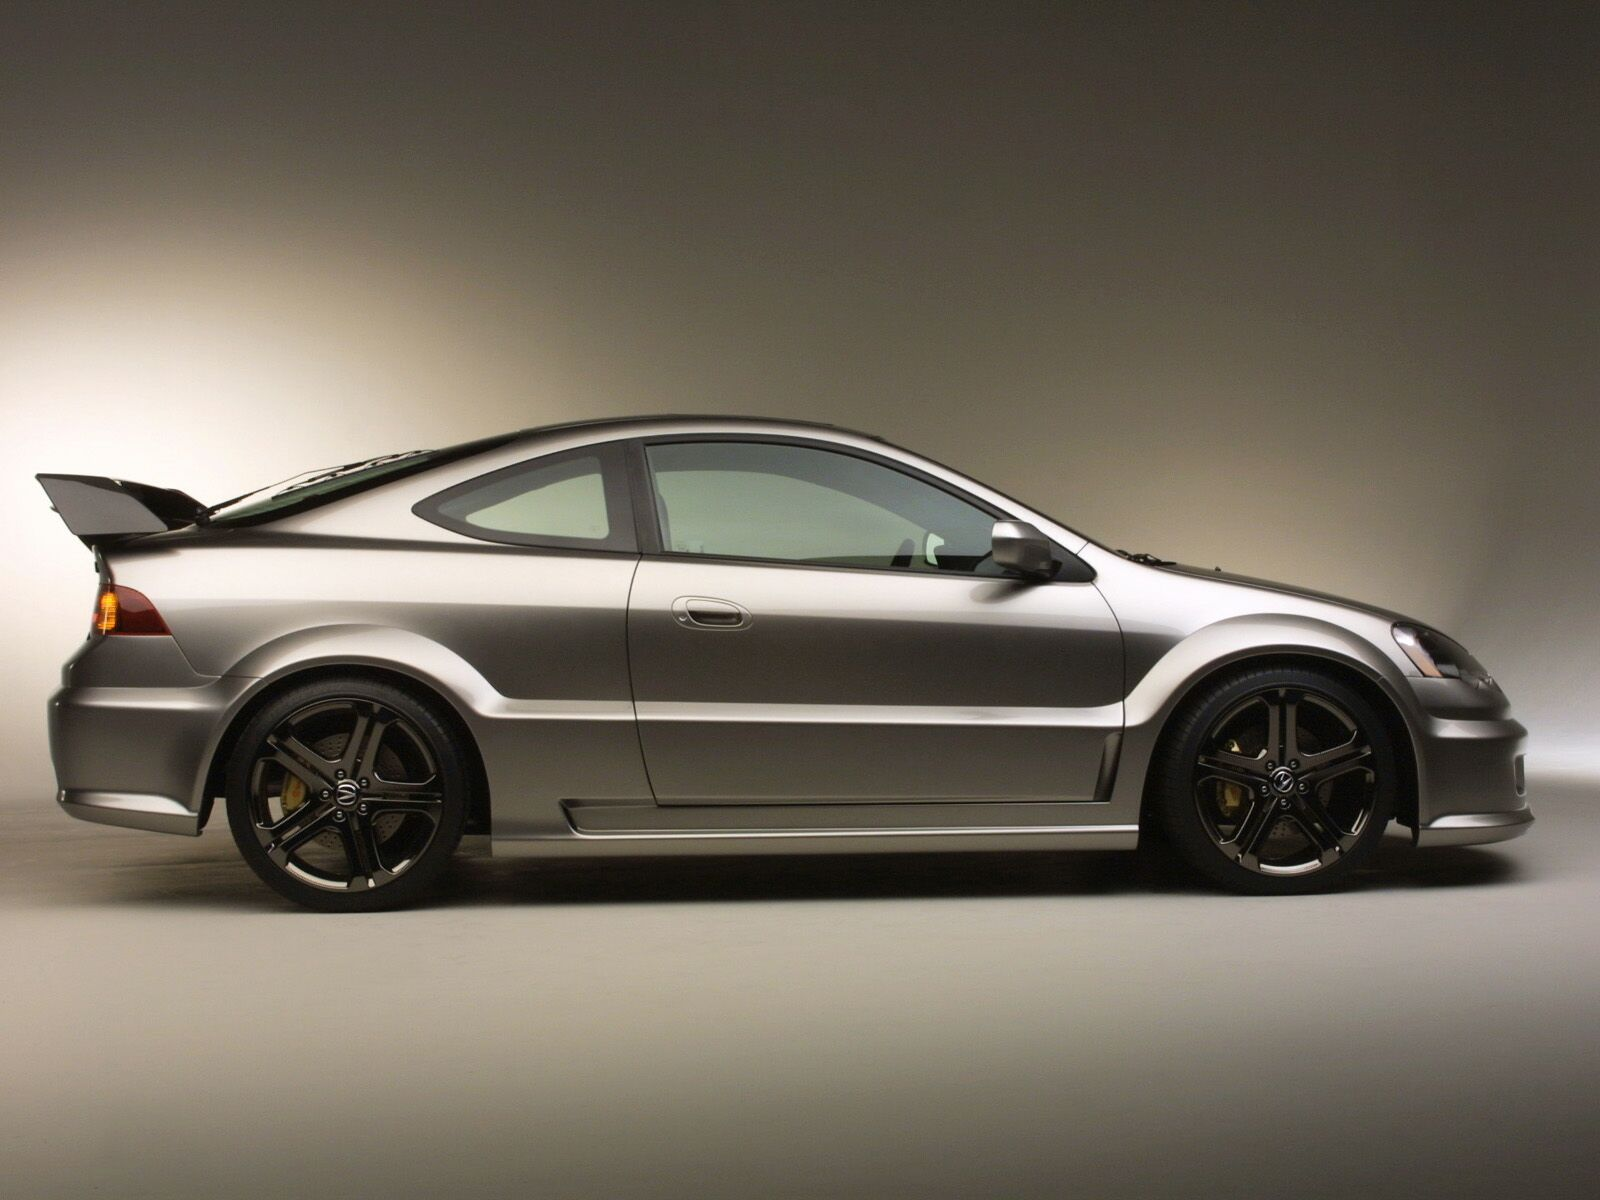 2006 Acura Rsx Type S >> RSX A-Spec 2005 Concept Body Kit - Acura Forum : Acura Forums